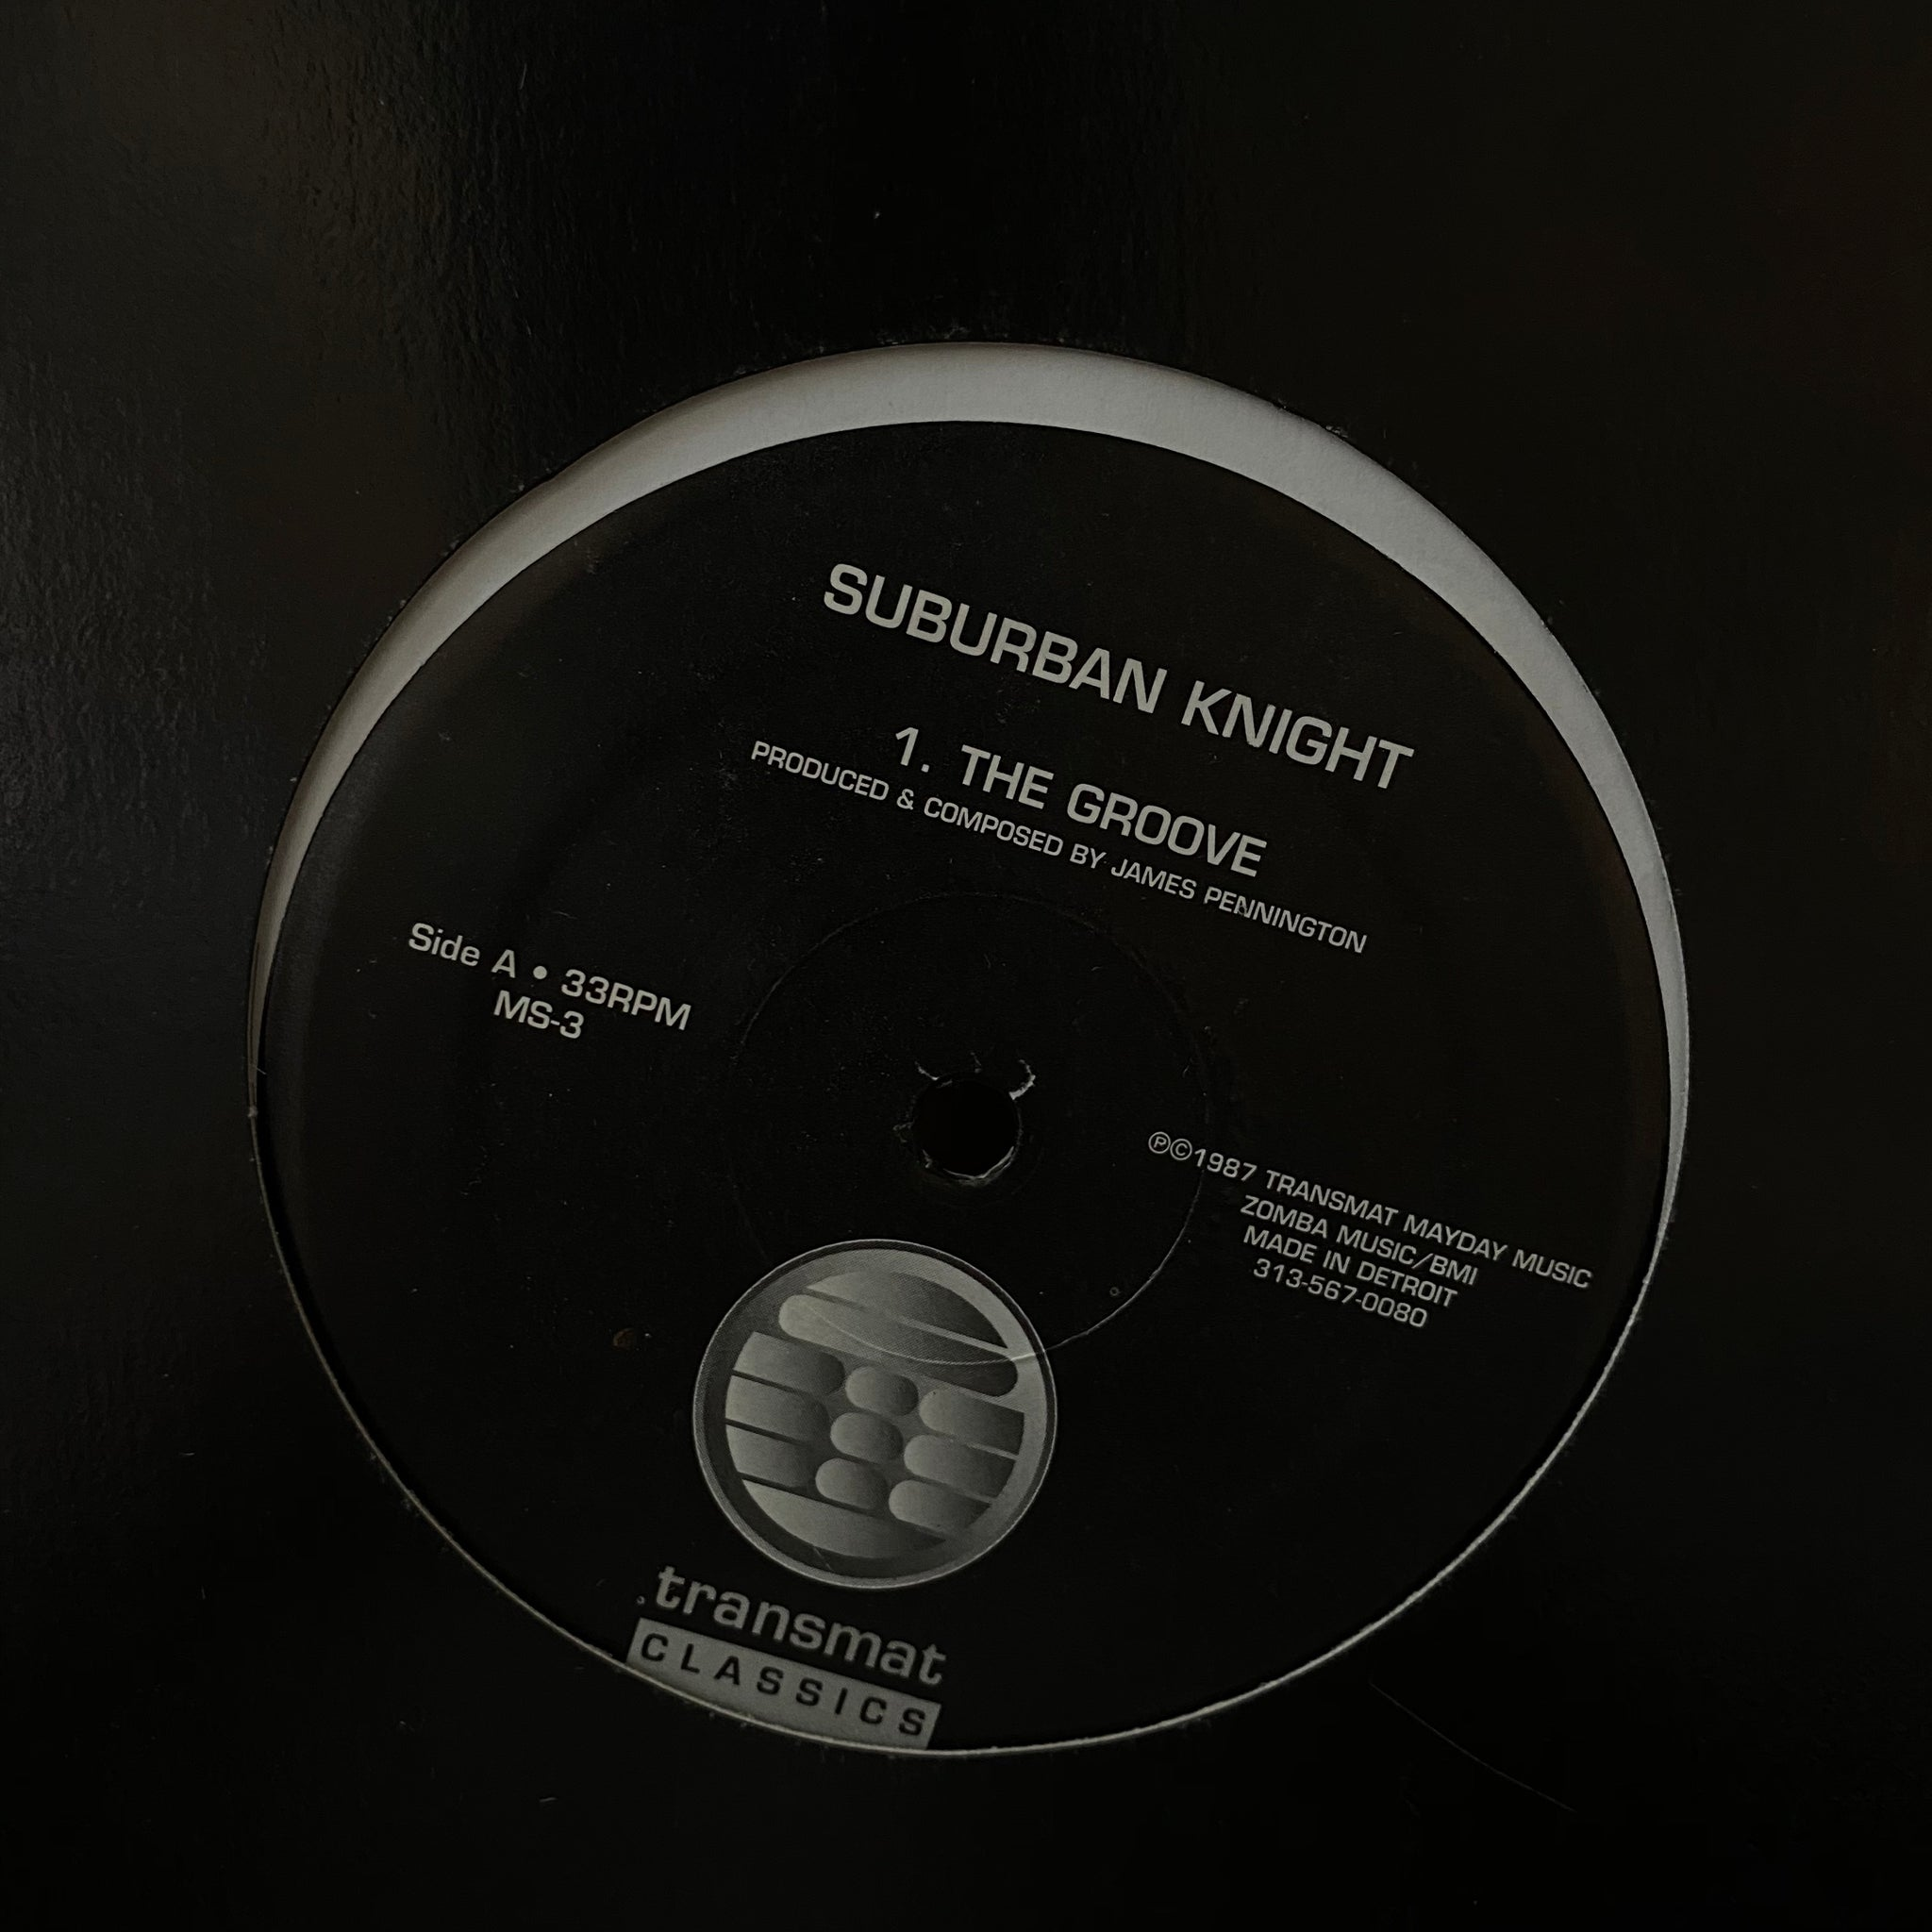 Suburban Knight ‎– The Groove